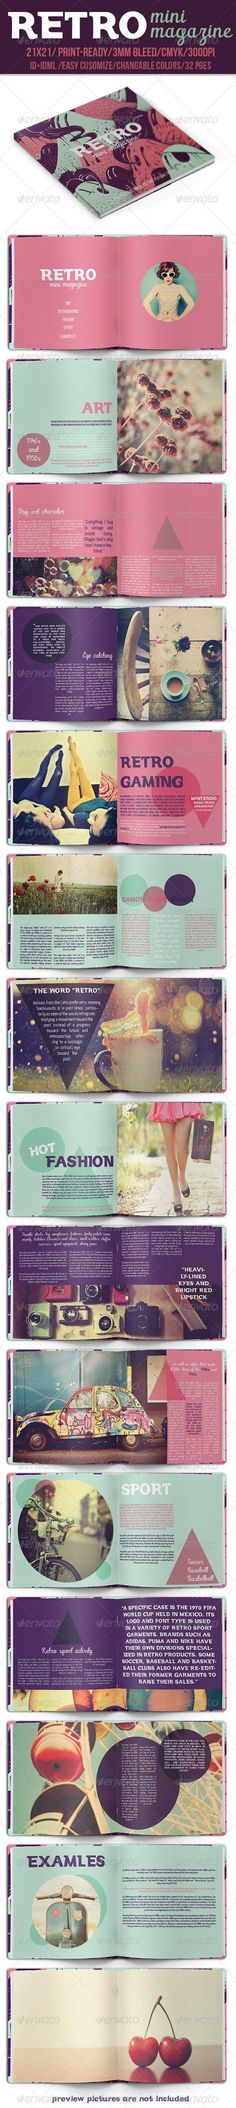 Retro Mini Magazine http://graphicriver.net/item/retro-mini-magazine/8240804?ref=damiamio In-design CS6 + Idml CS5 or lower Cool Retro Mini Magazine is magazine that provides your opportunity to use this layout for any purpose that you like. Easy to customize, just drop in your own text and pictures and you are ready to go. You can use this magazine for business, travel, wedding, car, beauty, art or any other category that you like.: